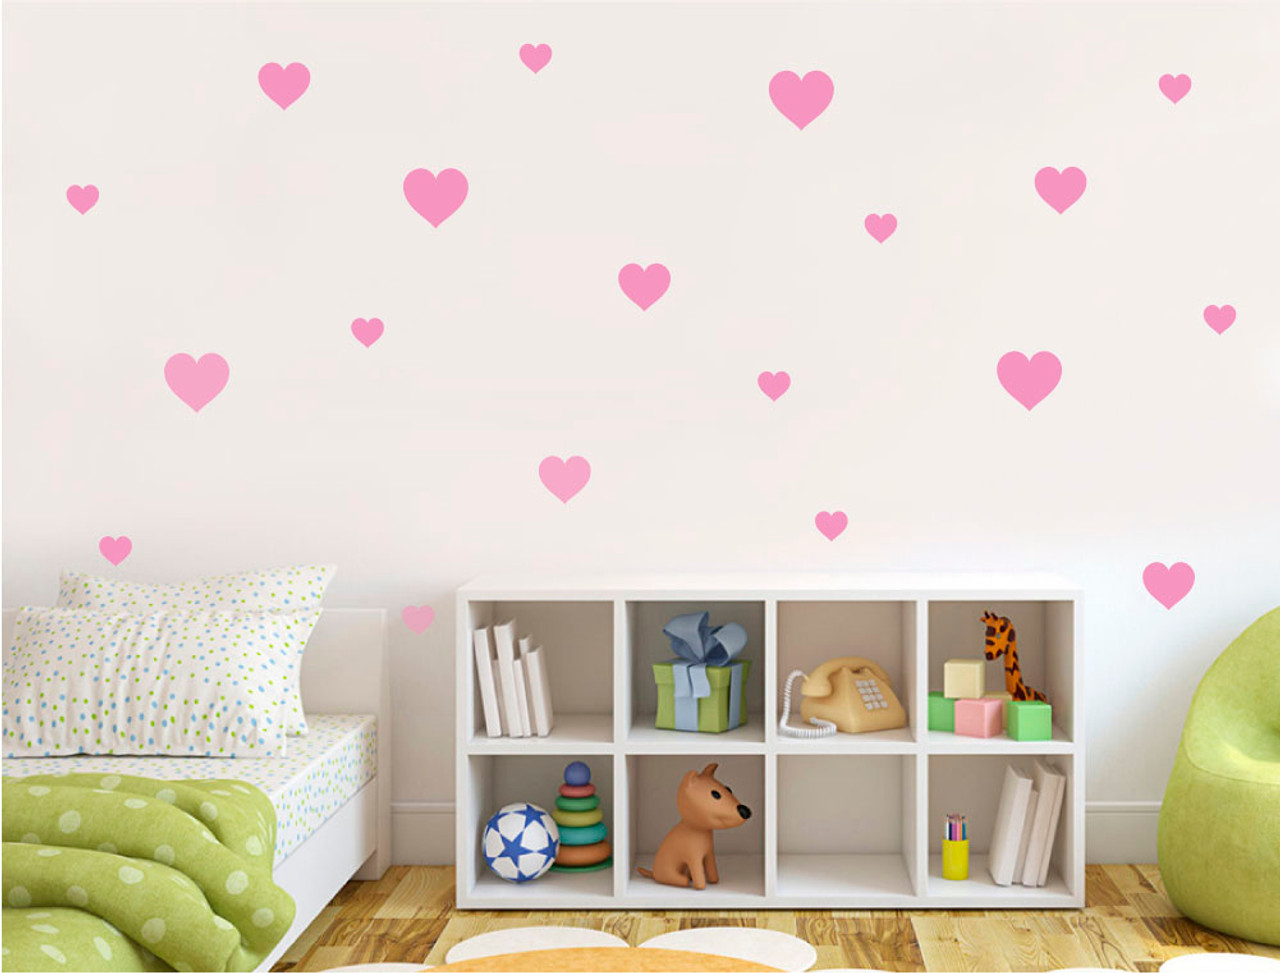 heart wall decor stickers pink c=2